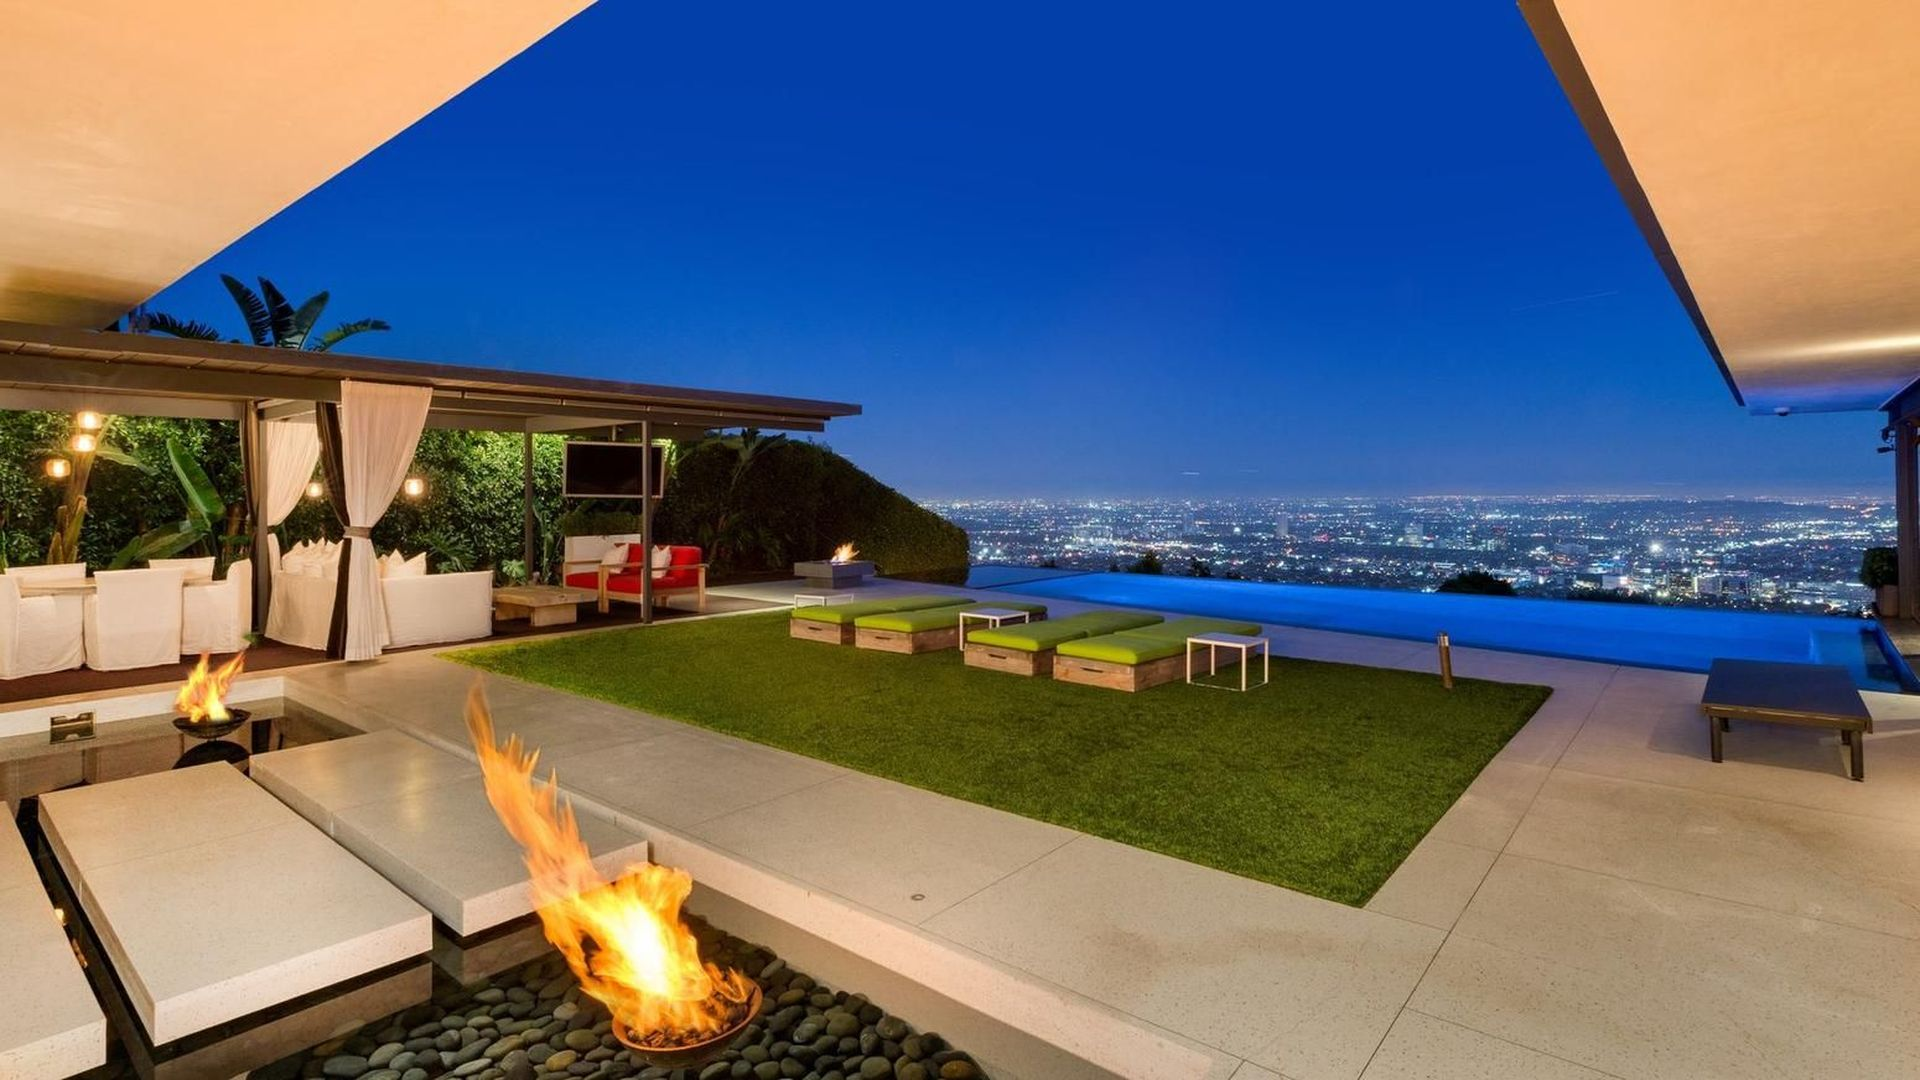 The infinity pool is lit with led lighting and cascades down overlooking the city, with views that expand from Hollywood Hills over Downtown LA to the Pacific Ocean.